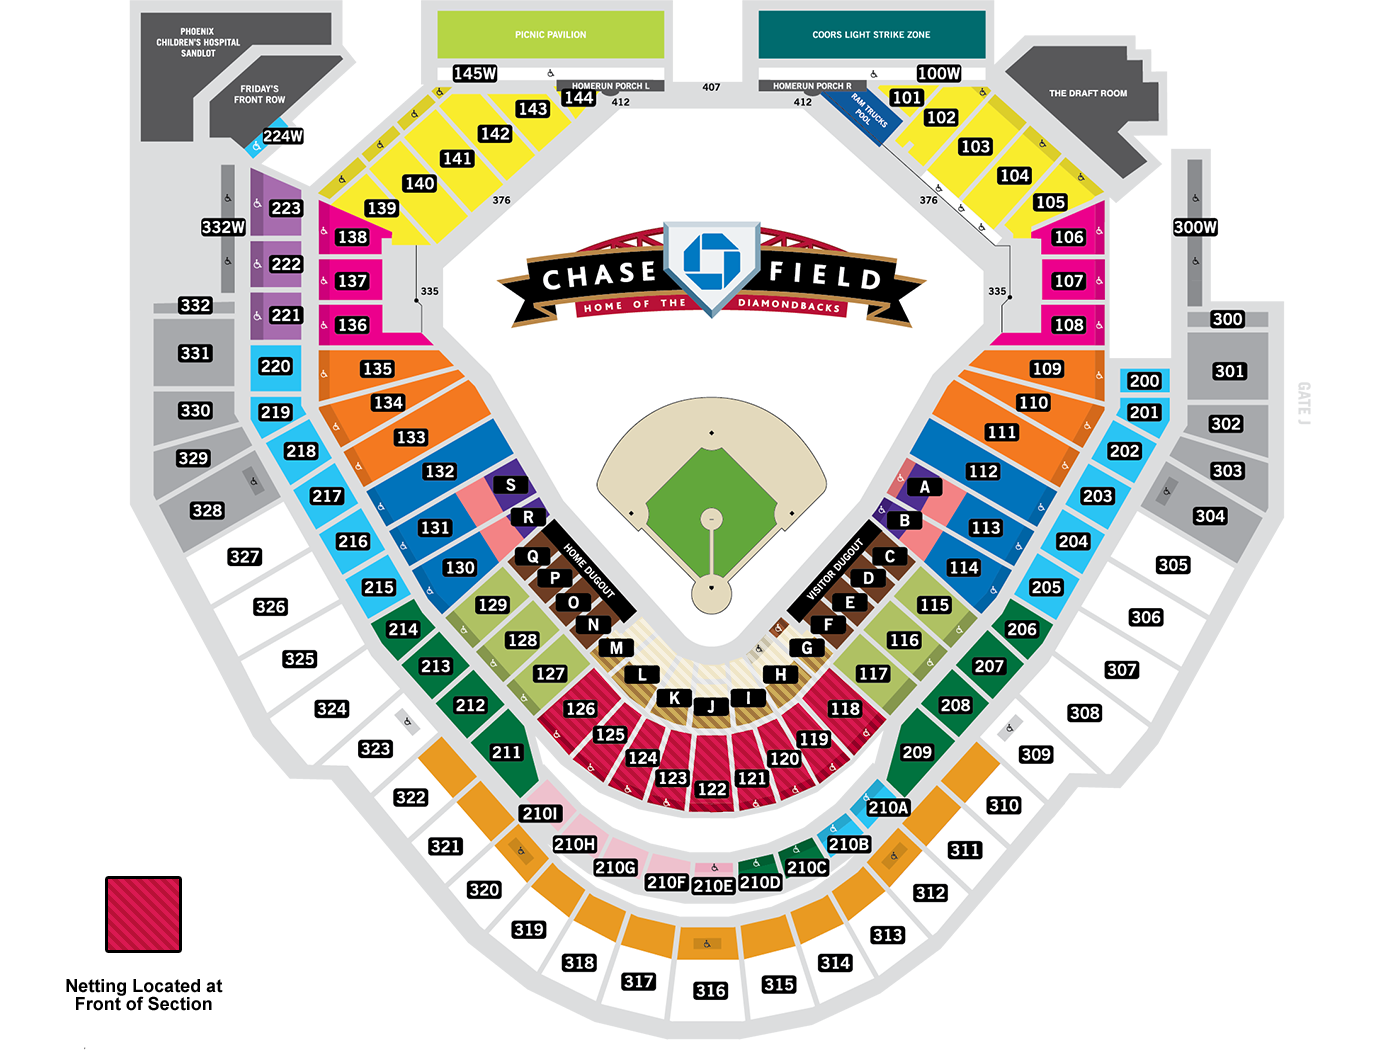 Chase field seating map mlb com